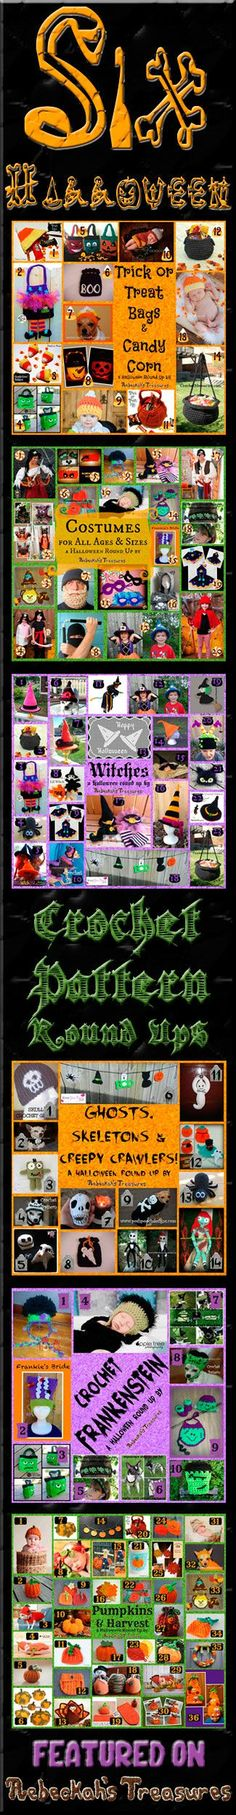 Six Halloween Crochet Pattern Round Ups via @beckastreasures - Featuring 26 designers and 100+ patterns!